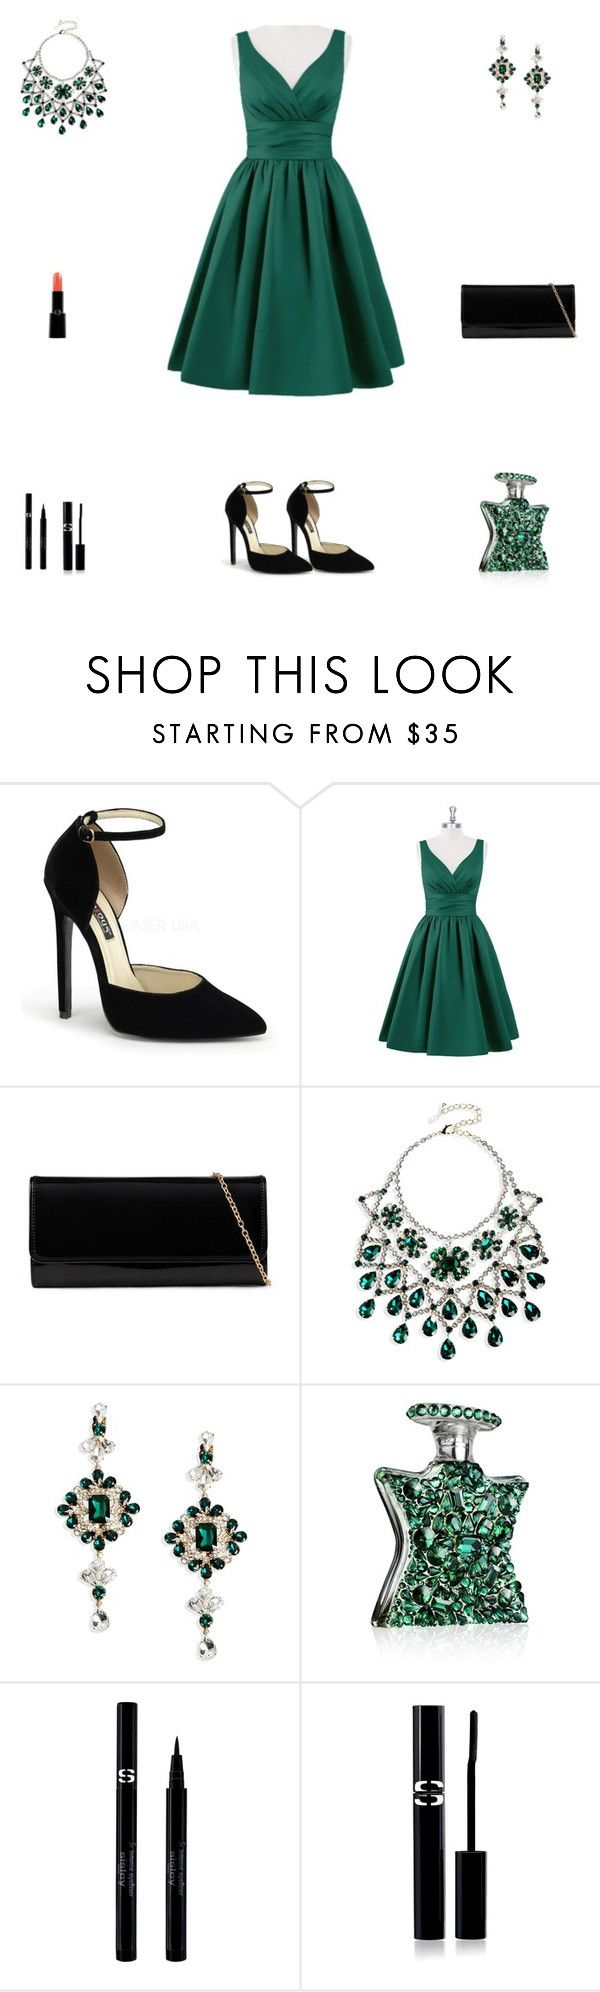 """""""Contest: Black & Emerald Green Outfit"""" by billsacred ❤ liked on Polyvore featuring ALDO, Dsquared2, Bond No. 9, Sisley, Sisley Paris and Giorgio Armani"""